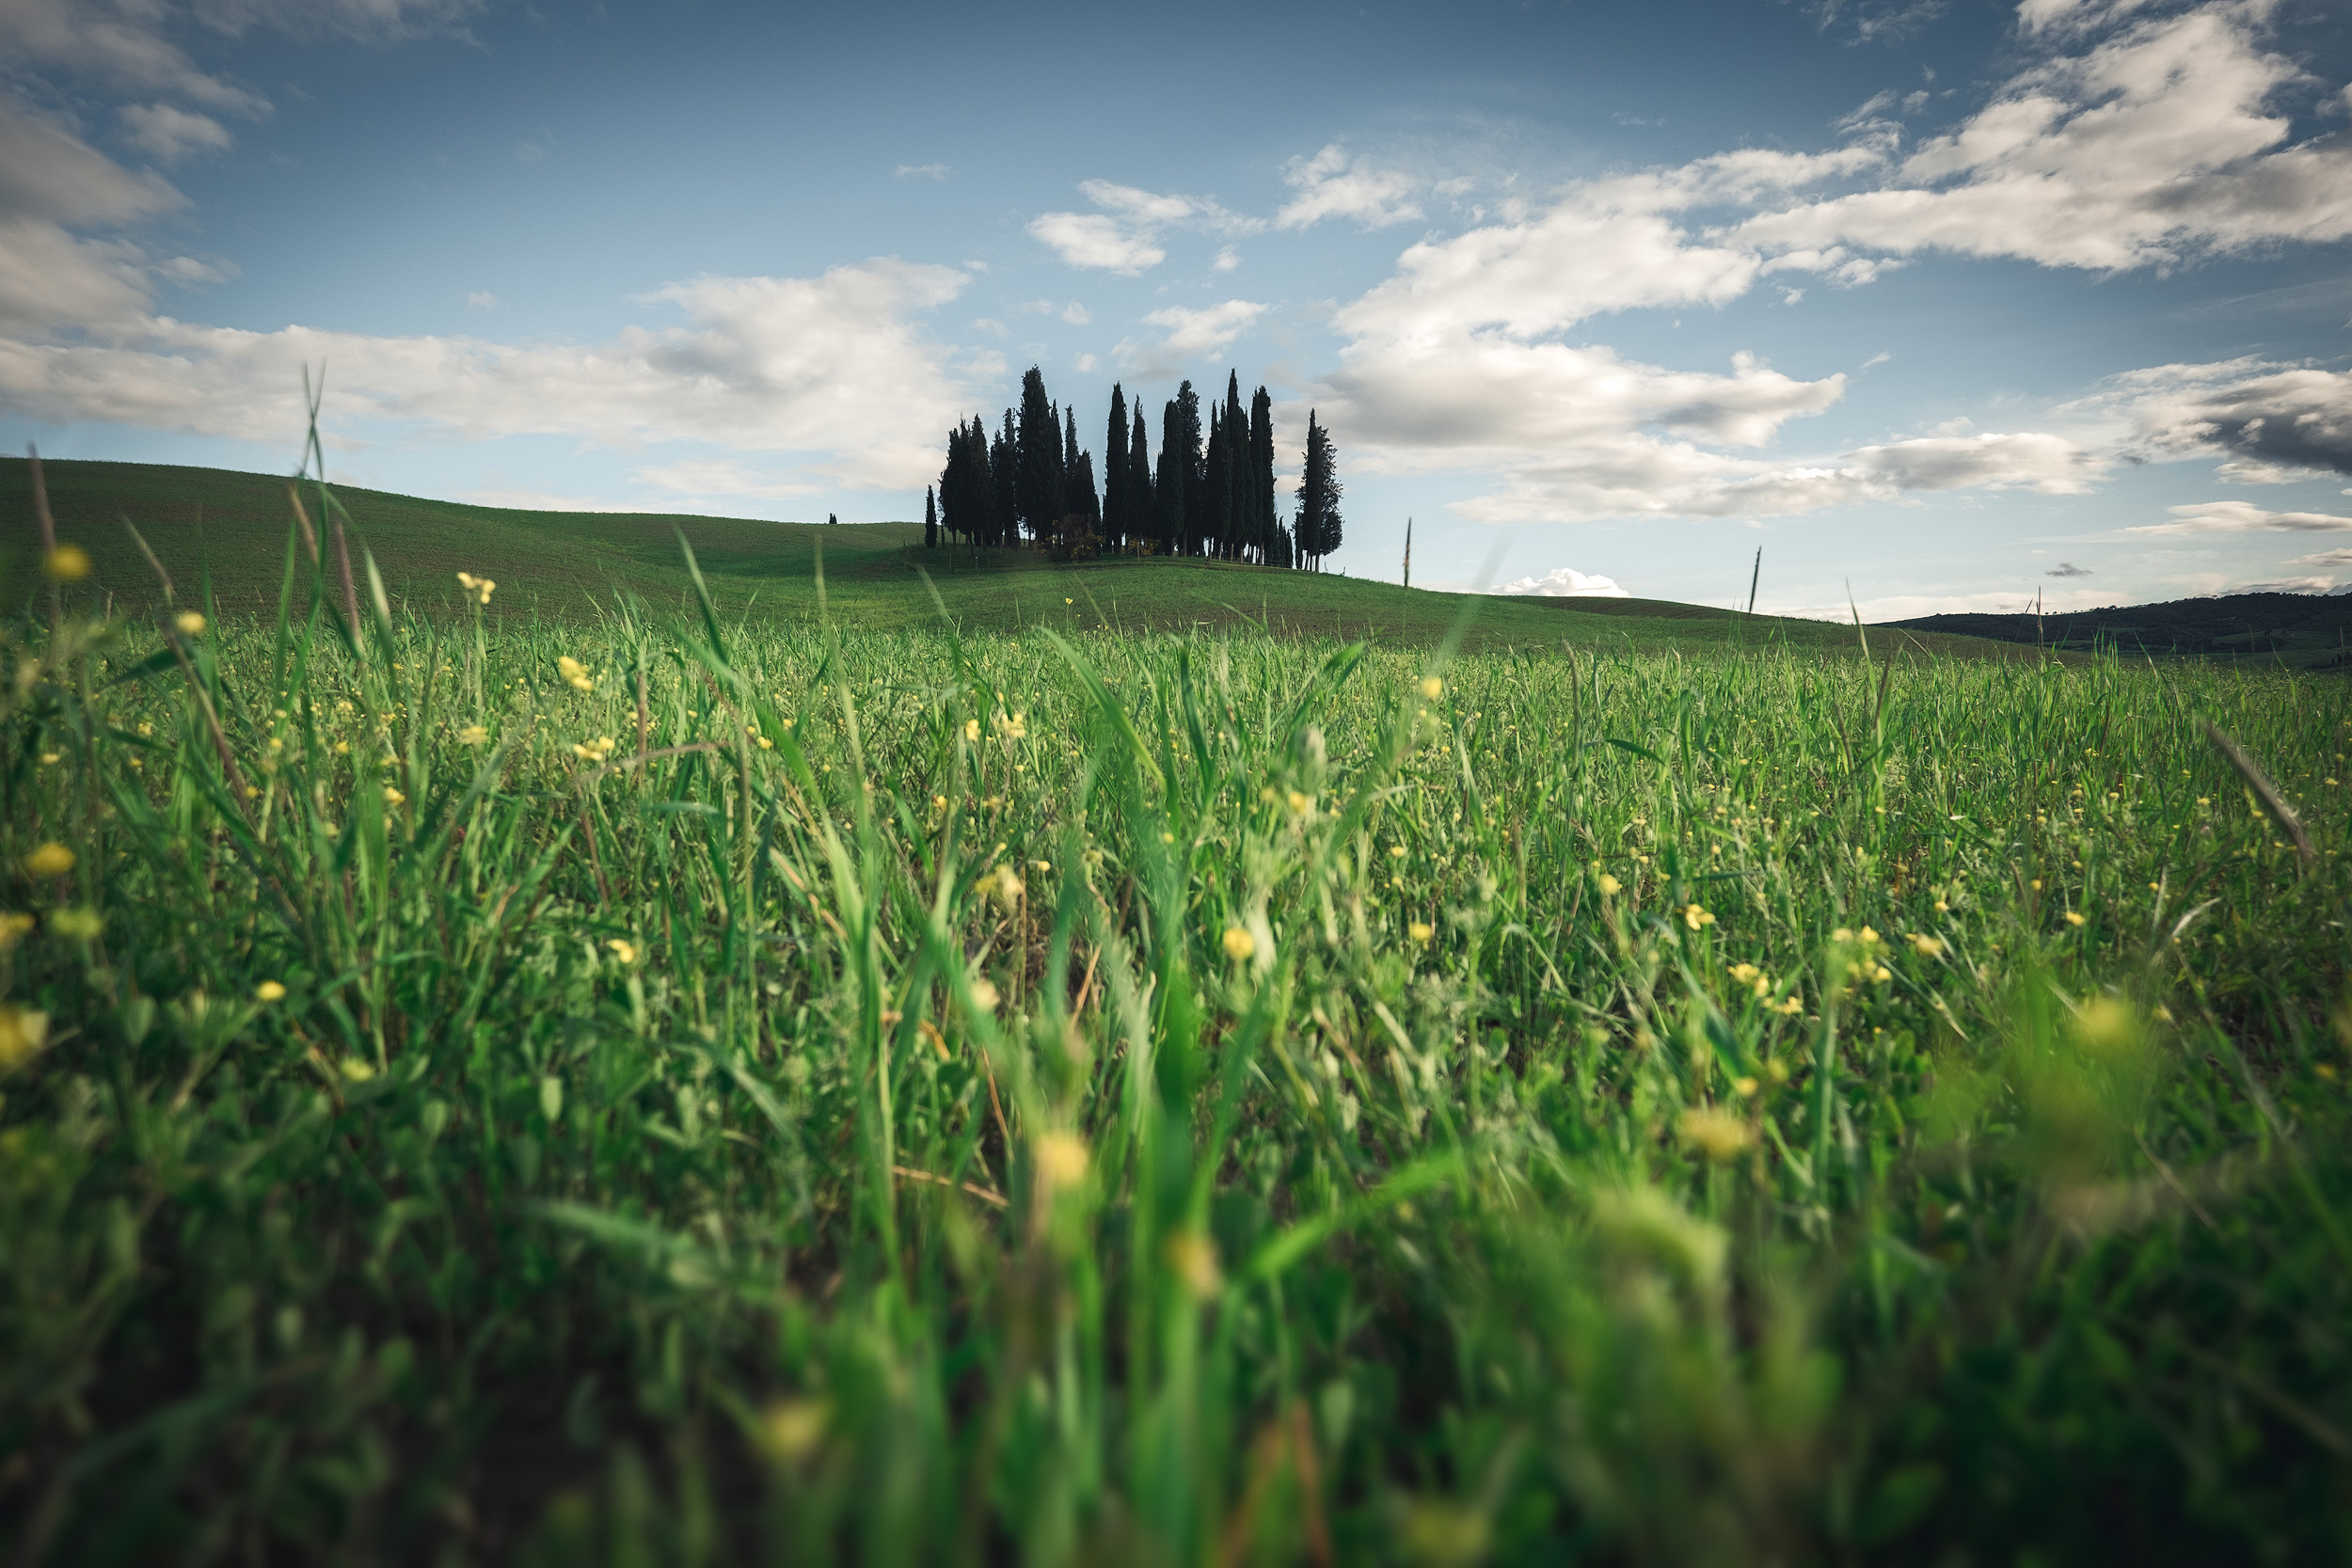 The iconic cypress trees near San Quirico d'Orcia